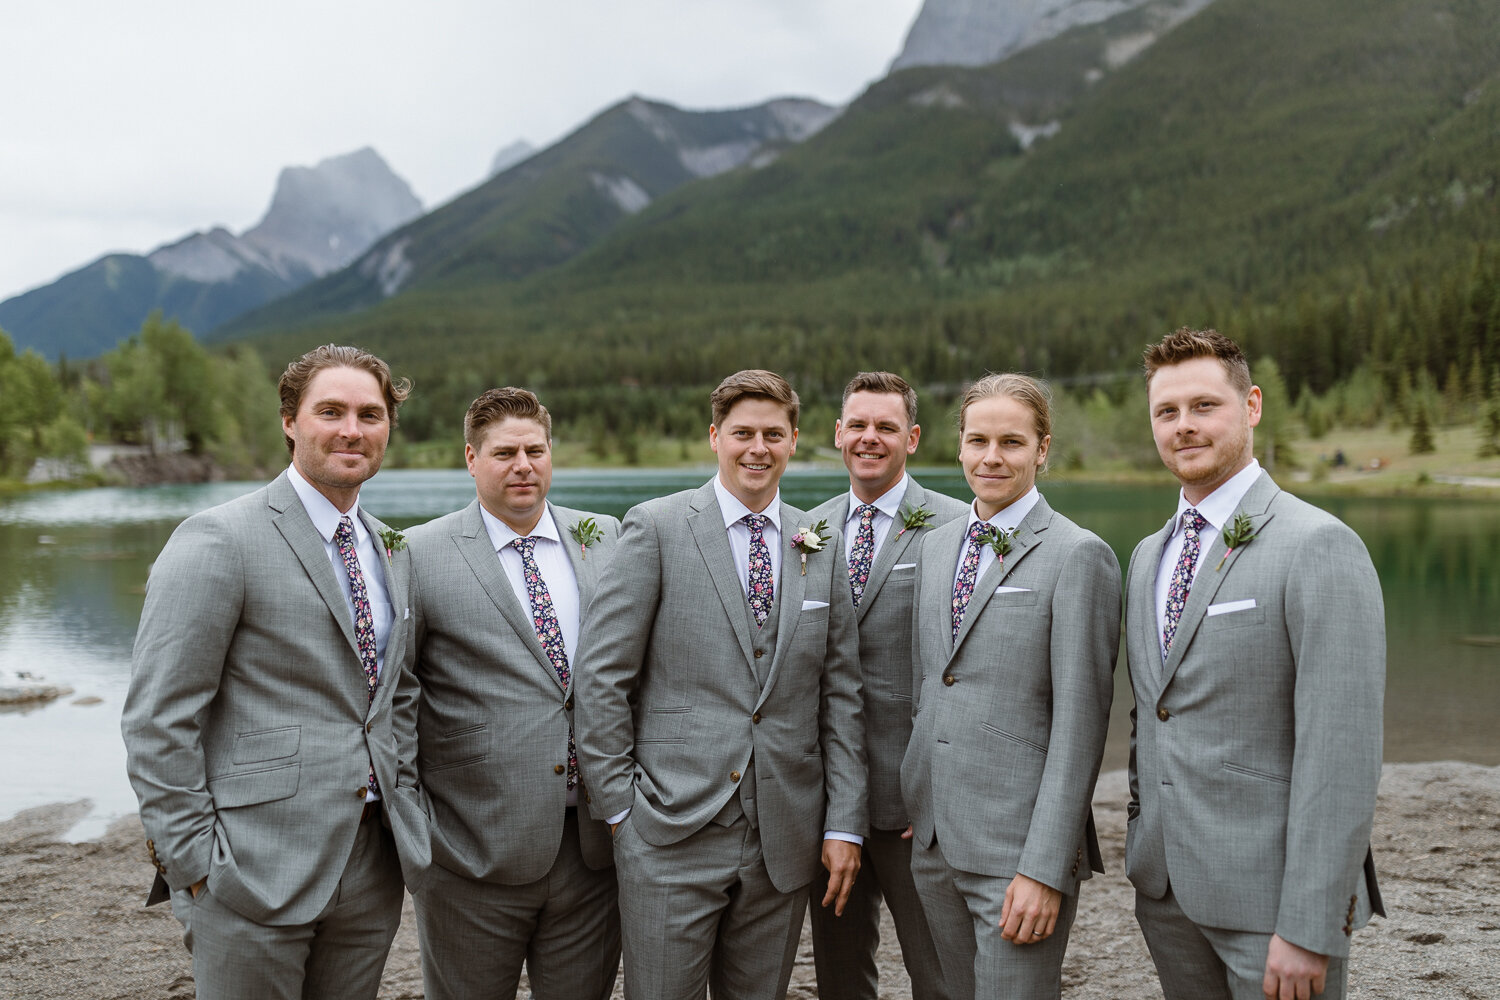 82-Canmore-Alberta-Real-Wedding-Best-Wedding-Photographers-118.JPG